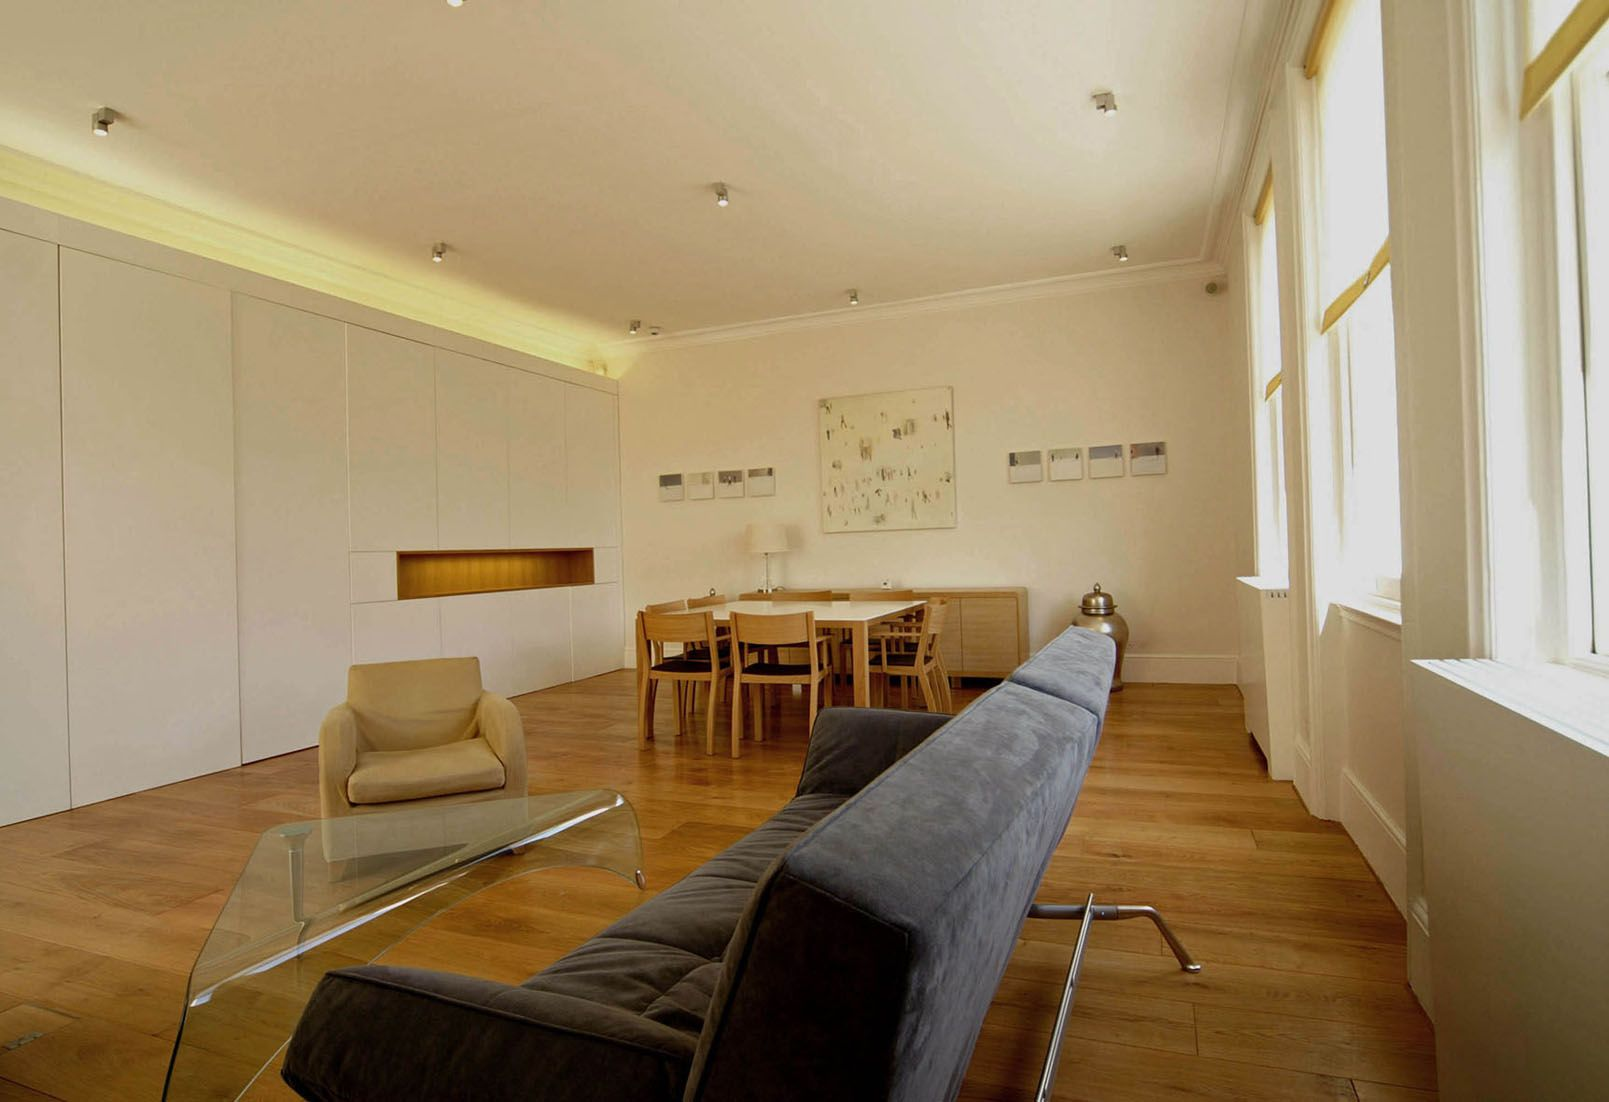 Grade 2 listed apartment in Kensington in London with wide